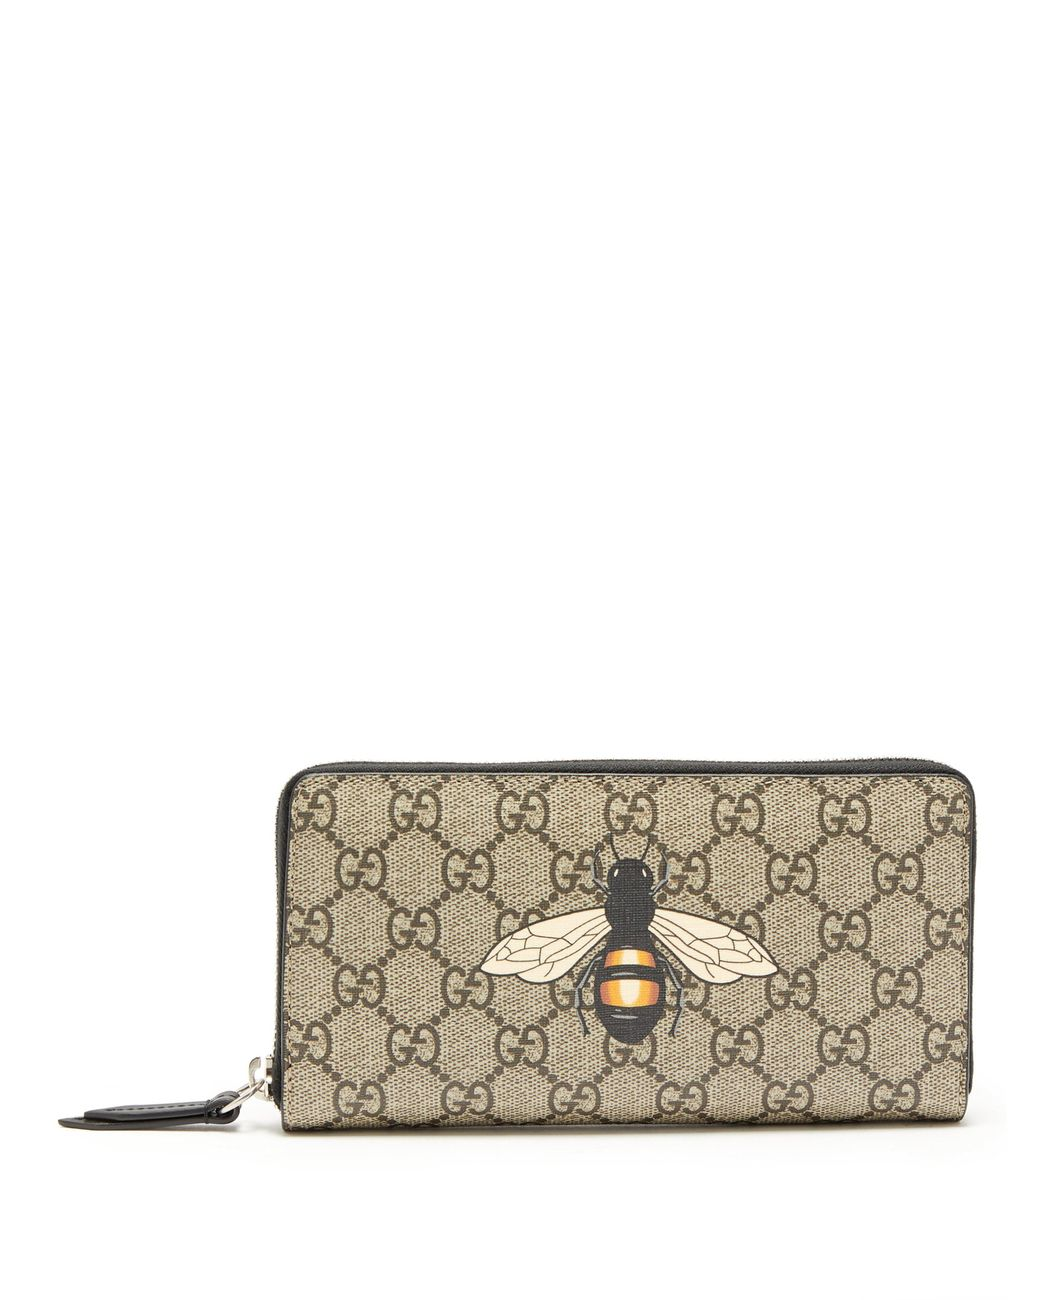 921e8e09daf Gucci Gg Supreme Bee Print Wallet in Brown for Men - Lyst